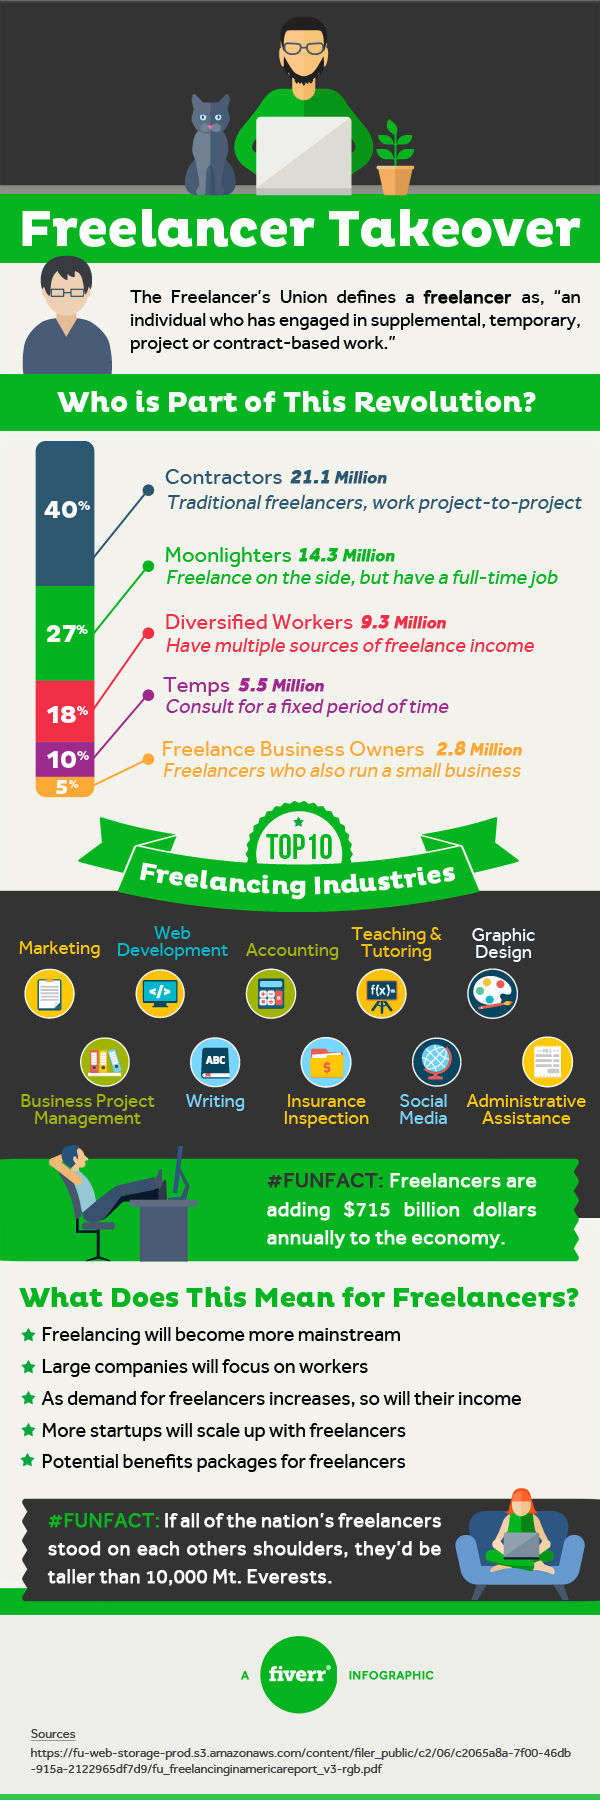 Freelancer Takeover Yes It S A Thing Fiverr Blog Freelancing Jobs Freelance Freelancers Union